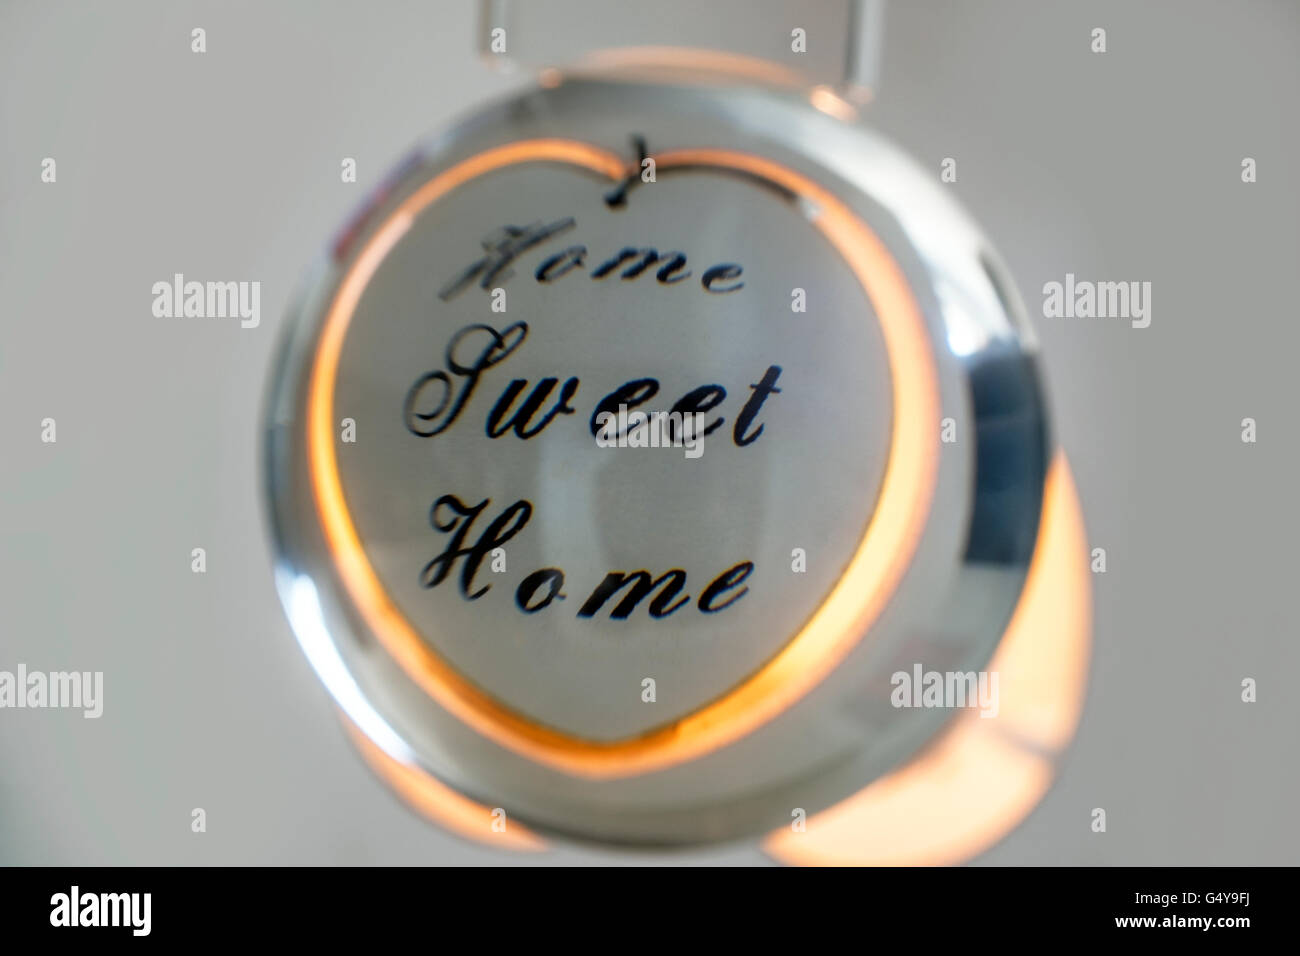 Crystal ball showing reflection of a Home Sweet Home candle holder - Stock Image